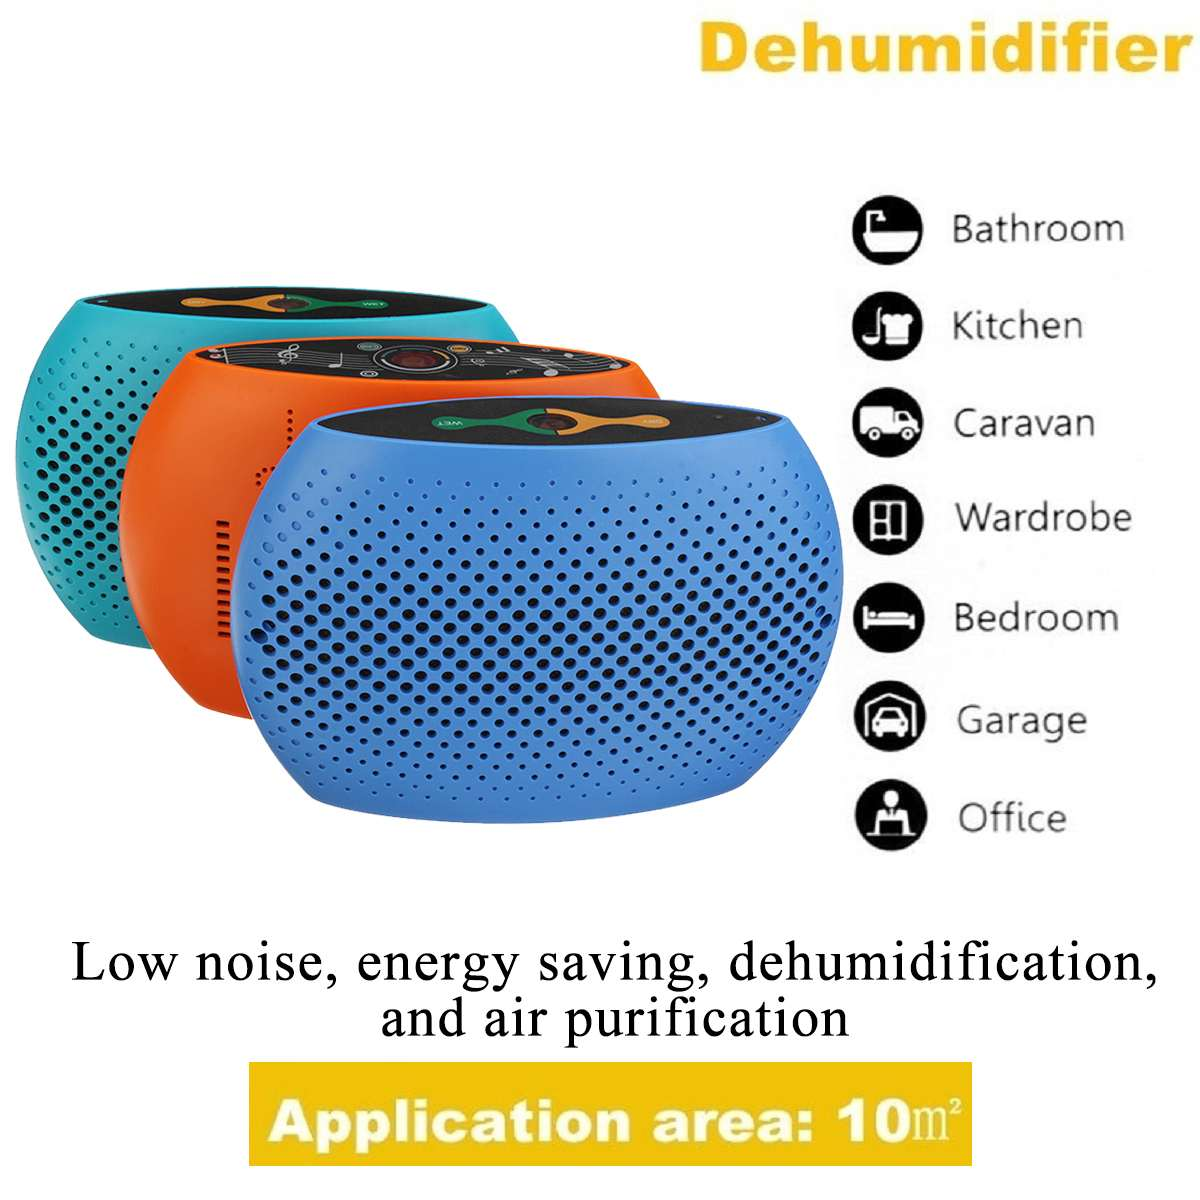 Mini Dehumidifier For Home Air Dryer Wardrobe Safe Mould Moisture Absorber Rechargeable Household Closet Electric Cooling DryerMini Dehumidifier For Home Air Dryer Wardrobe Safe Mould Moisture Absorber Rechargeable Household Closet Electric Cooling Dryer